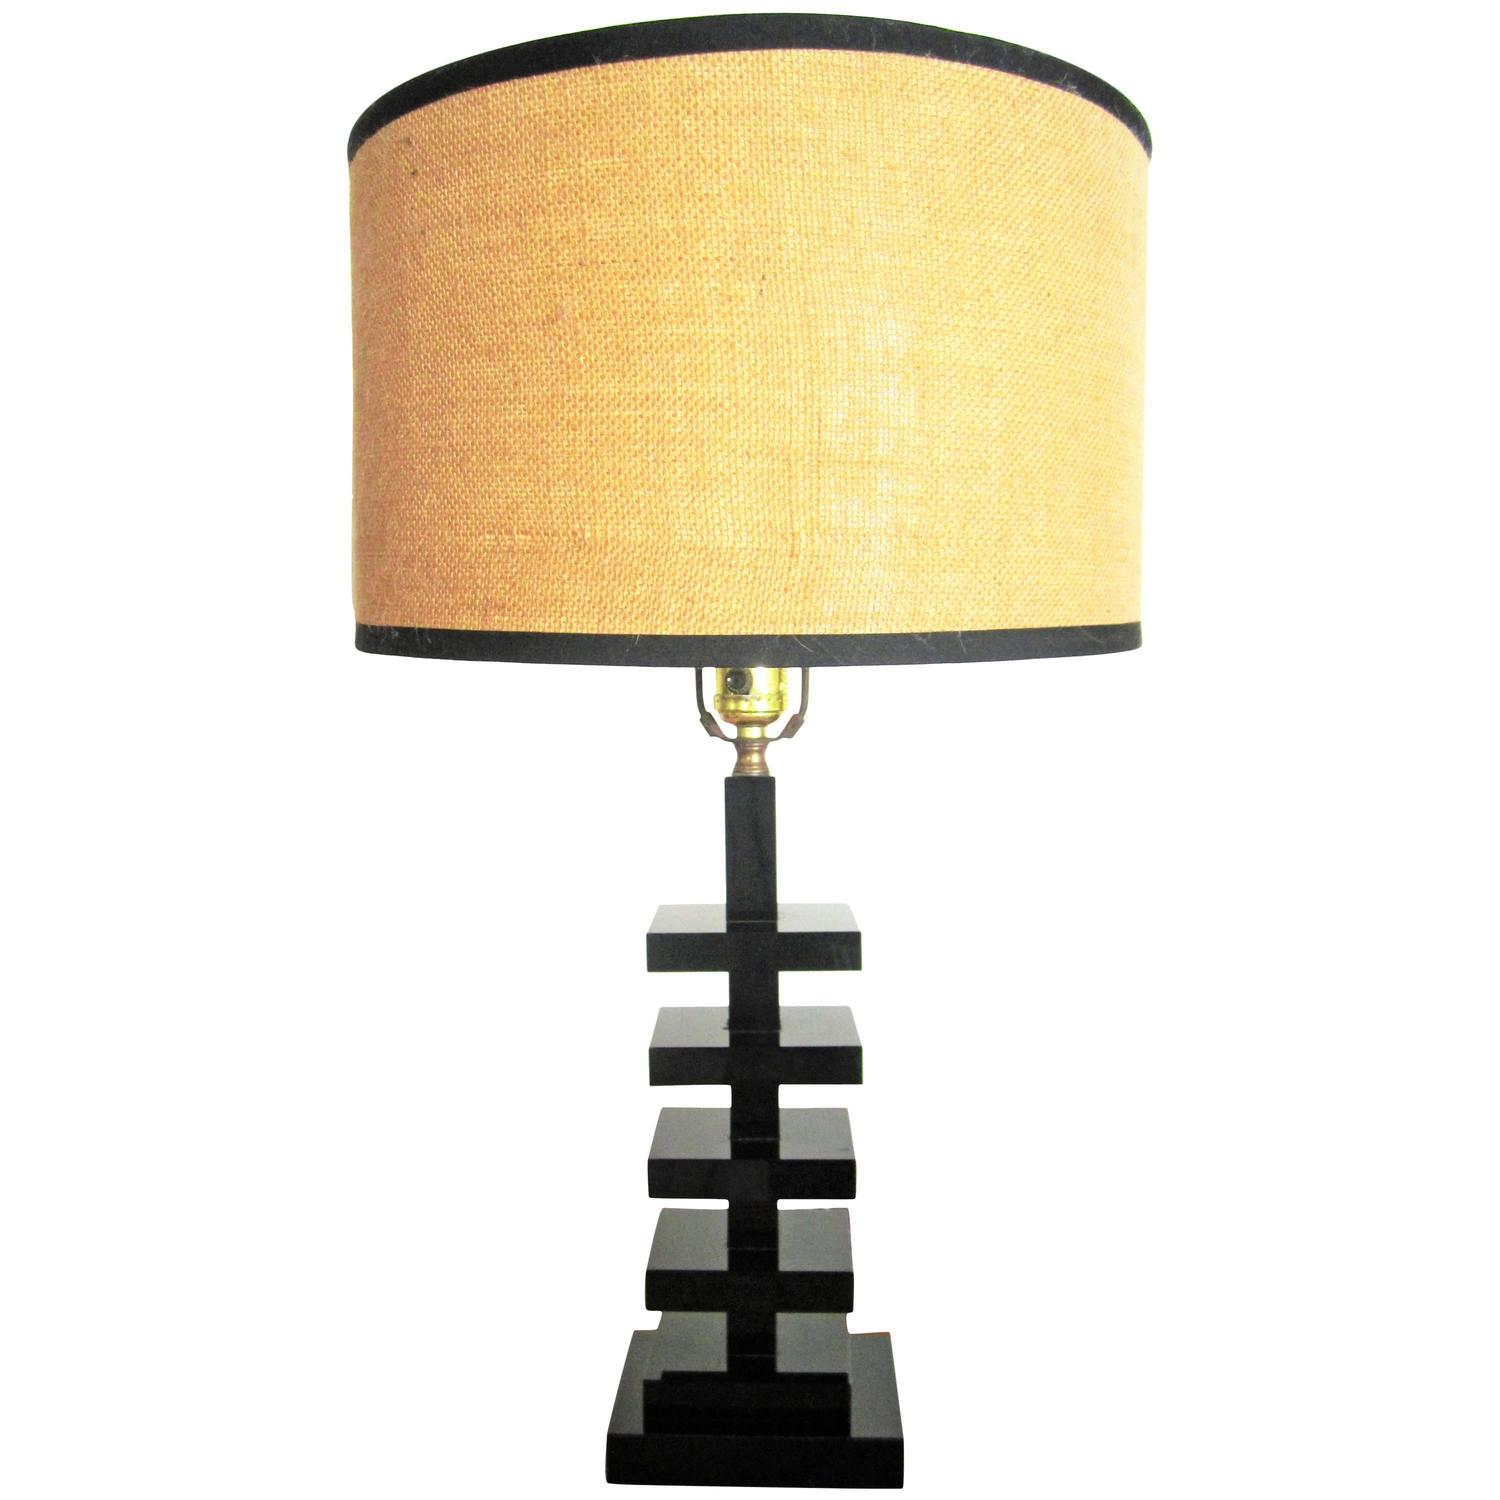 Art deco porcelain figural male female table lamps by lenox circa modern art deco black glass table lamp circa 1940s geotapseo Image collections